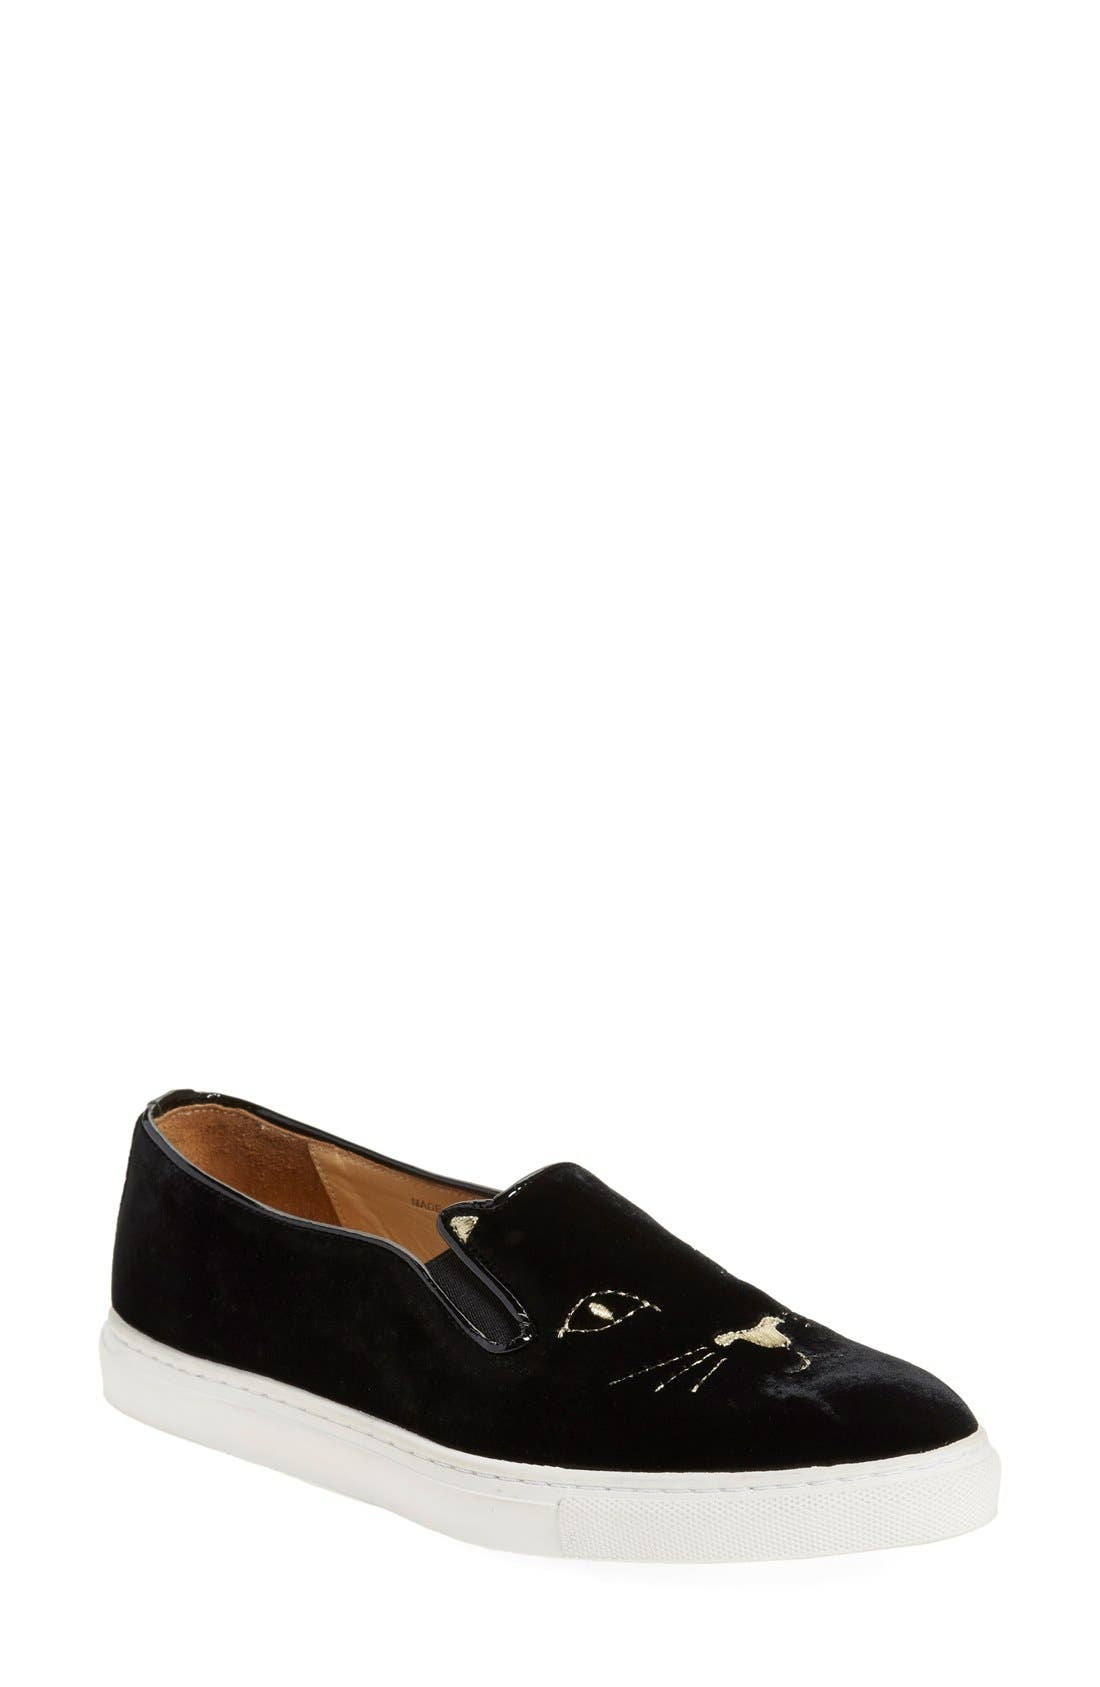 Main Image - Charlotte Olympia Cool Cats Slip-On Sneaker (Women)